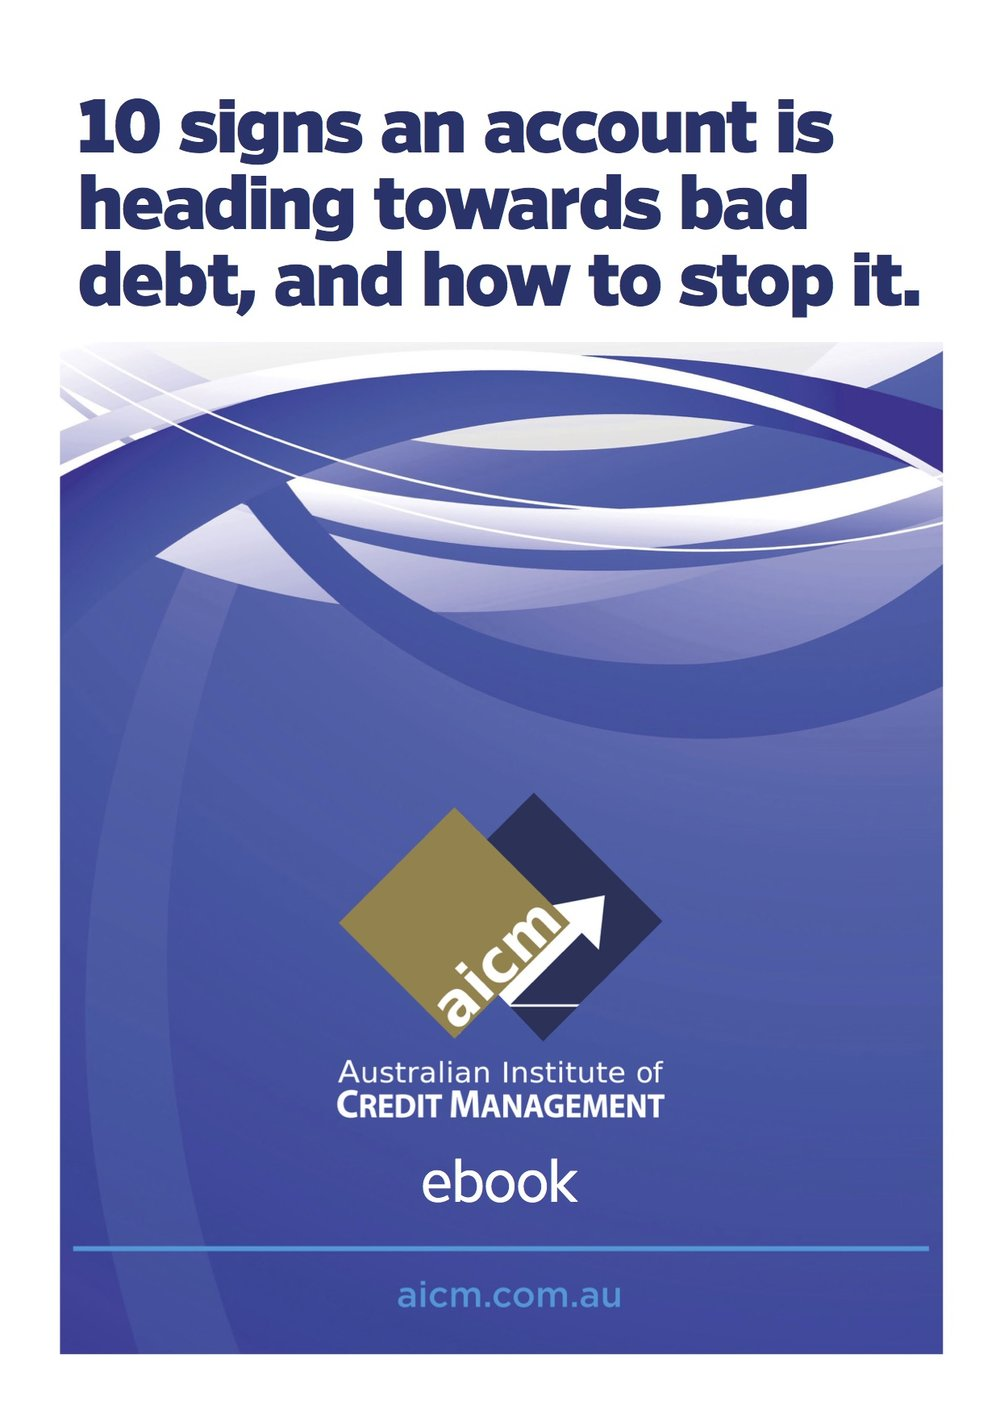 White paper_Australian Institute of Credit Management.jpg